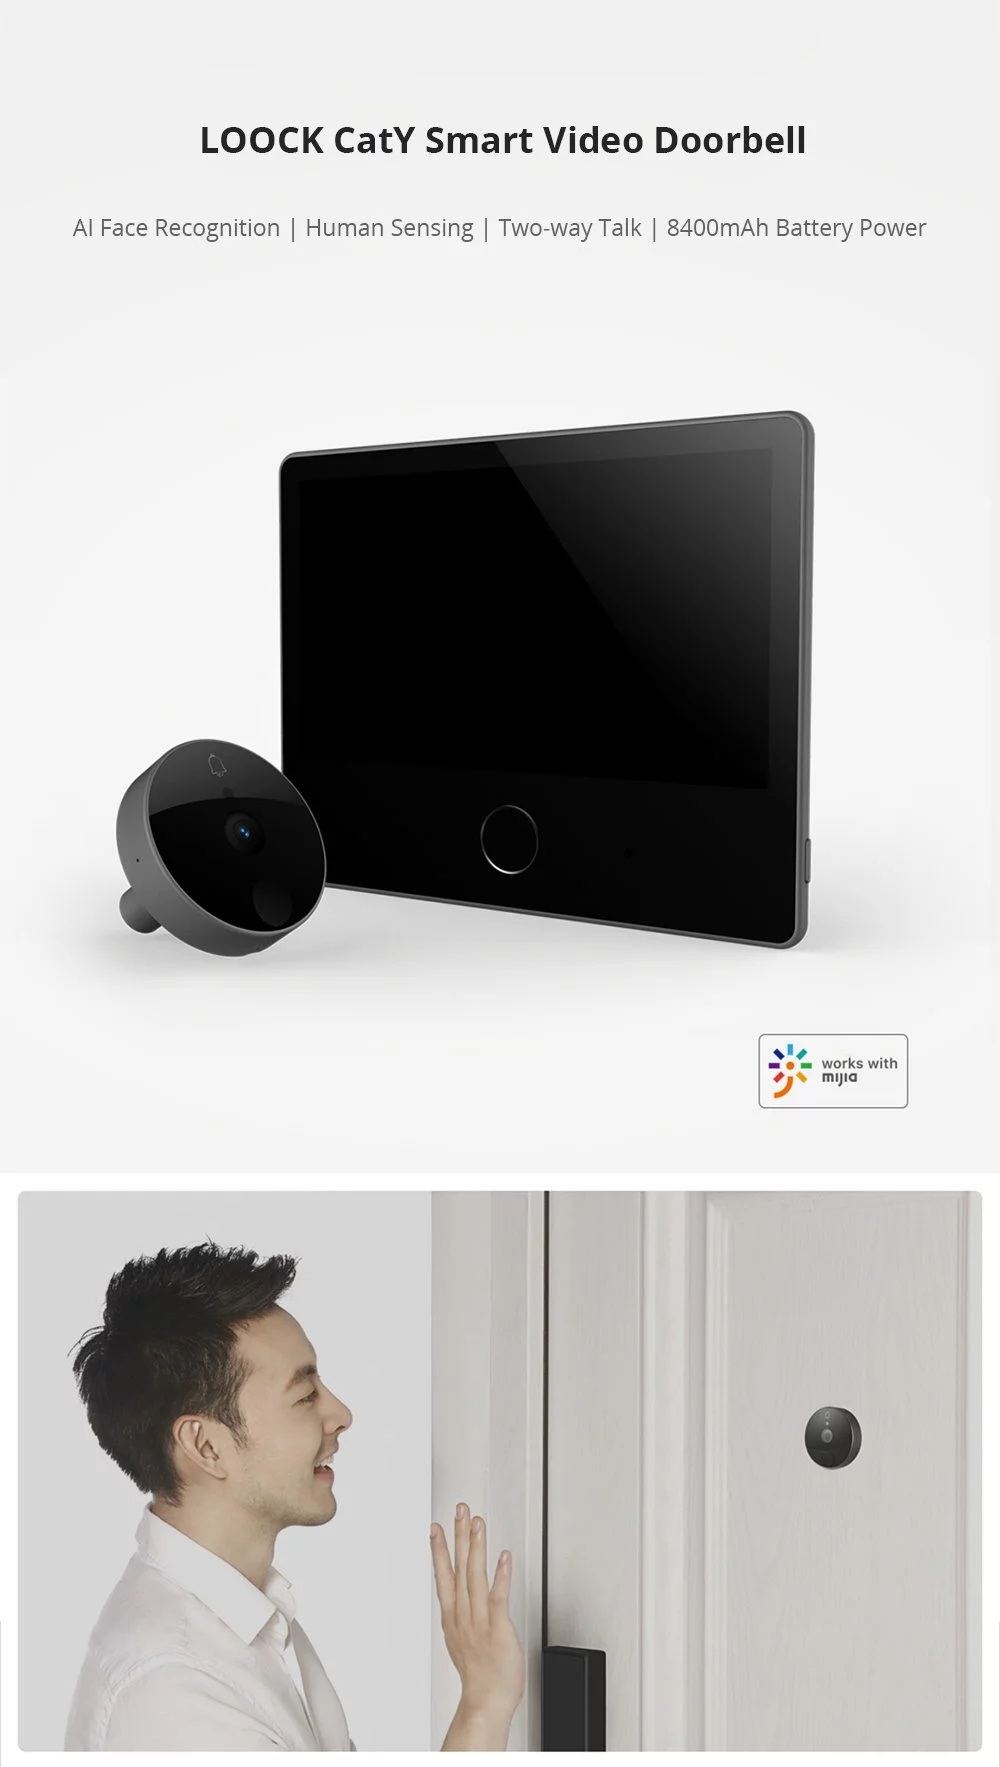 Xiaomi Loock CatY Smart Video Doorbell.jpg